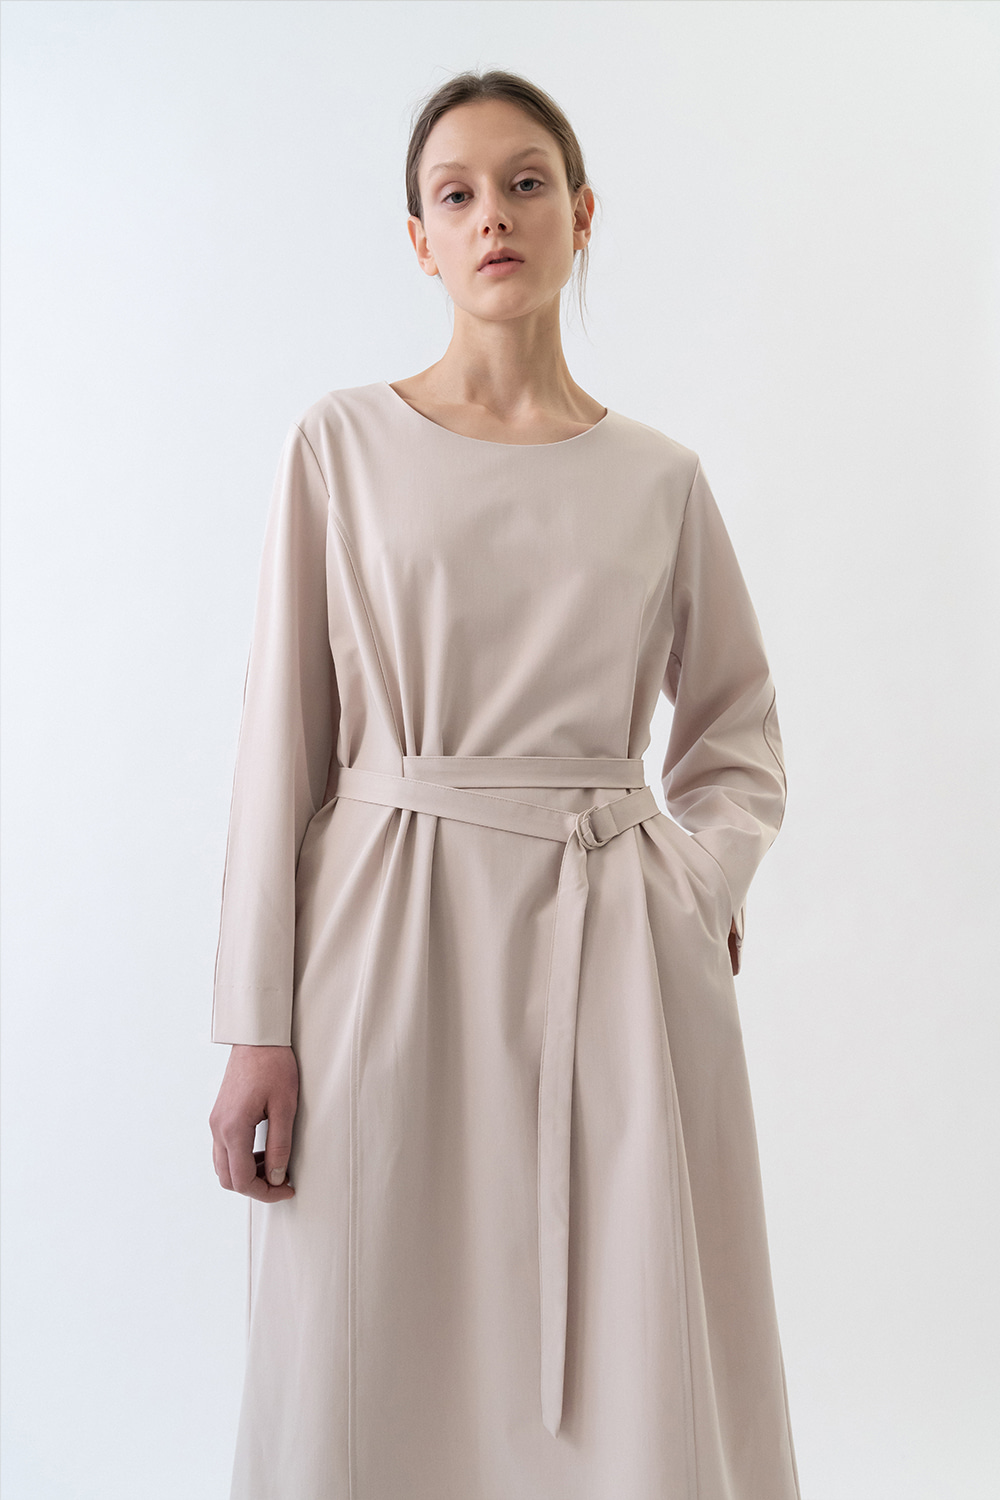 Belted Dress Women [Cream]